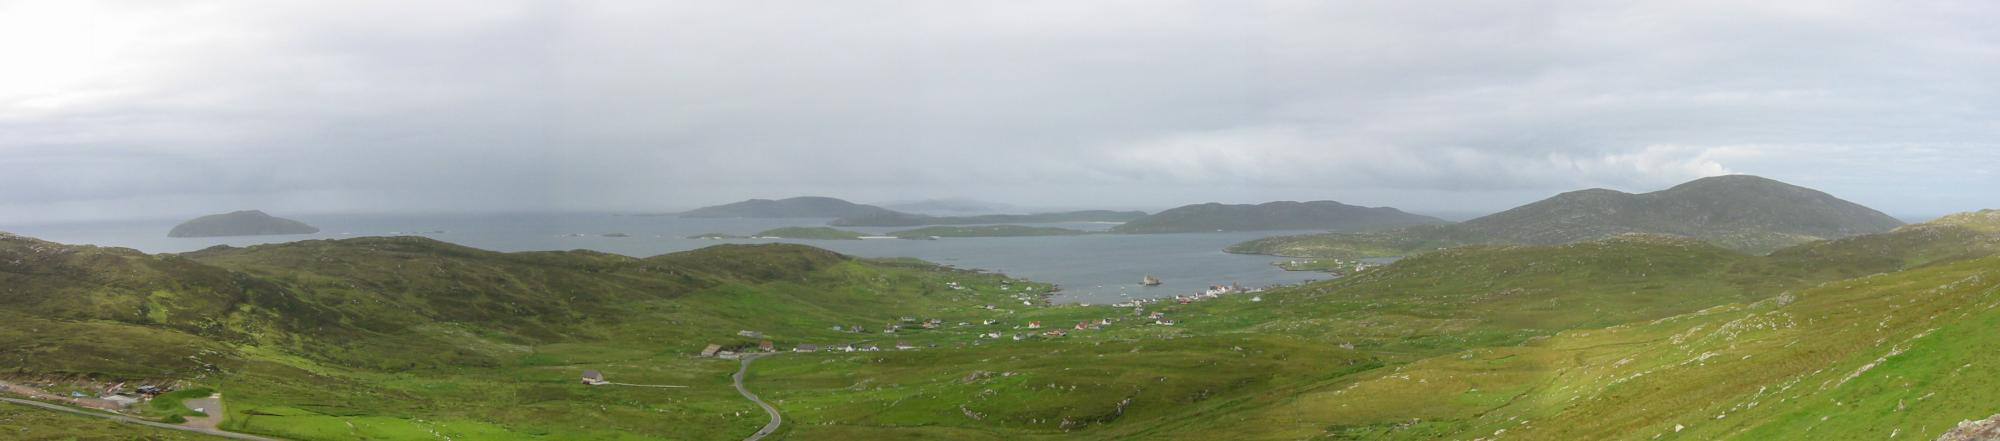 Southerly panorama from the climb up Heaval